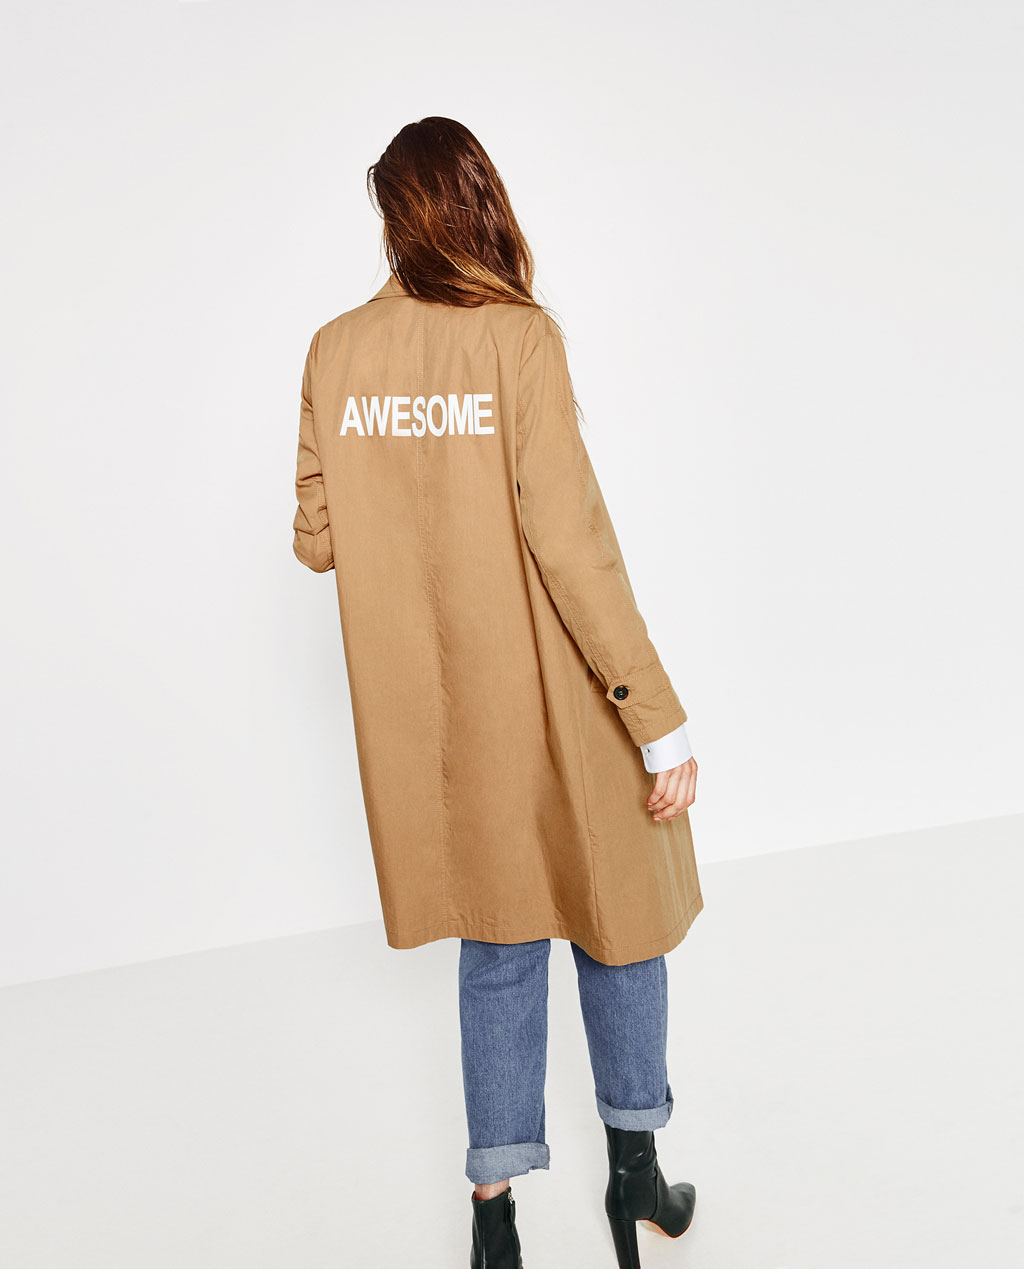 Zara   Long Trench Coat , £19.99 (60% off) -  Less than £20, is there any point in resisting awesomeness...?